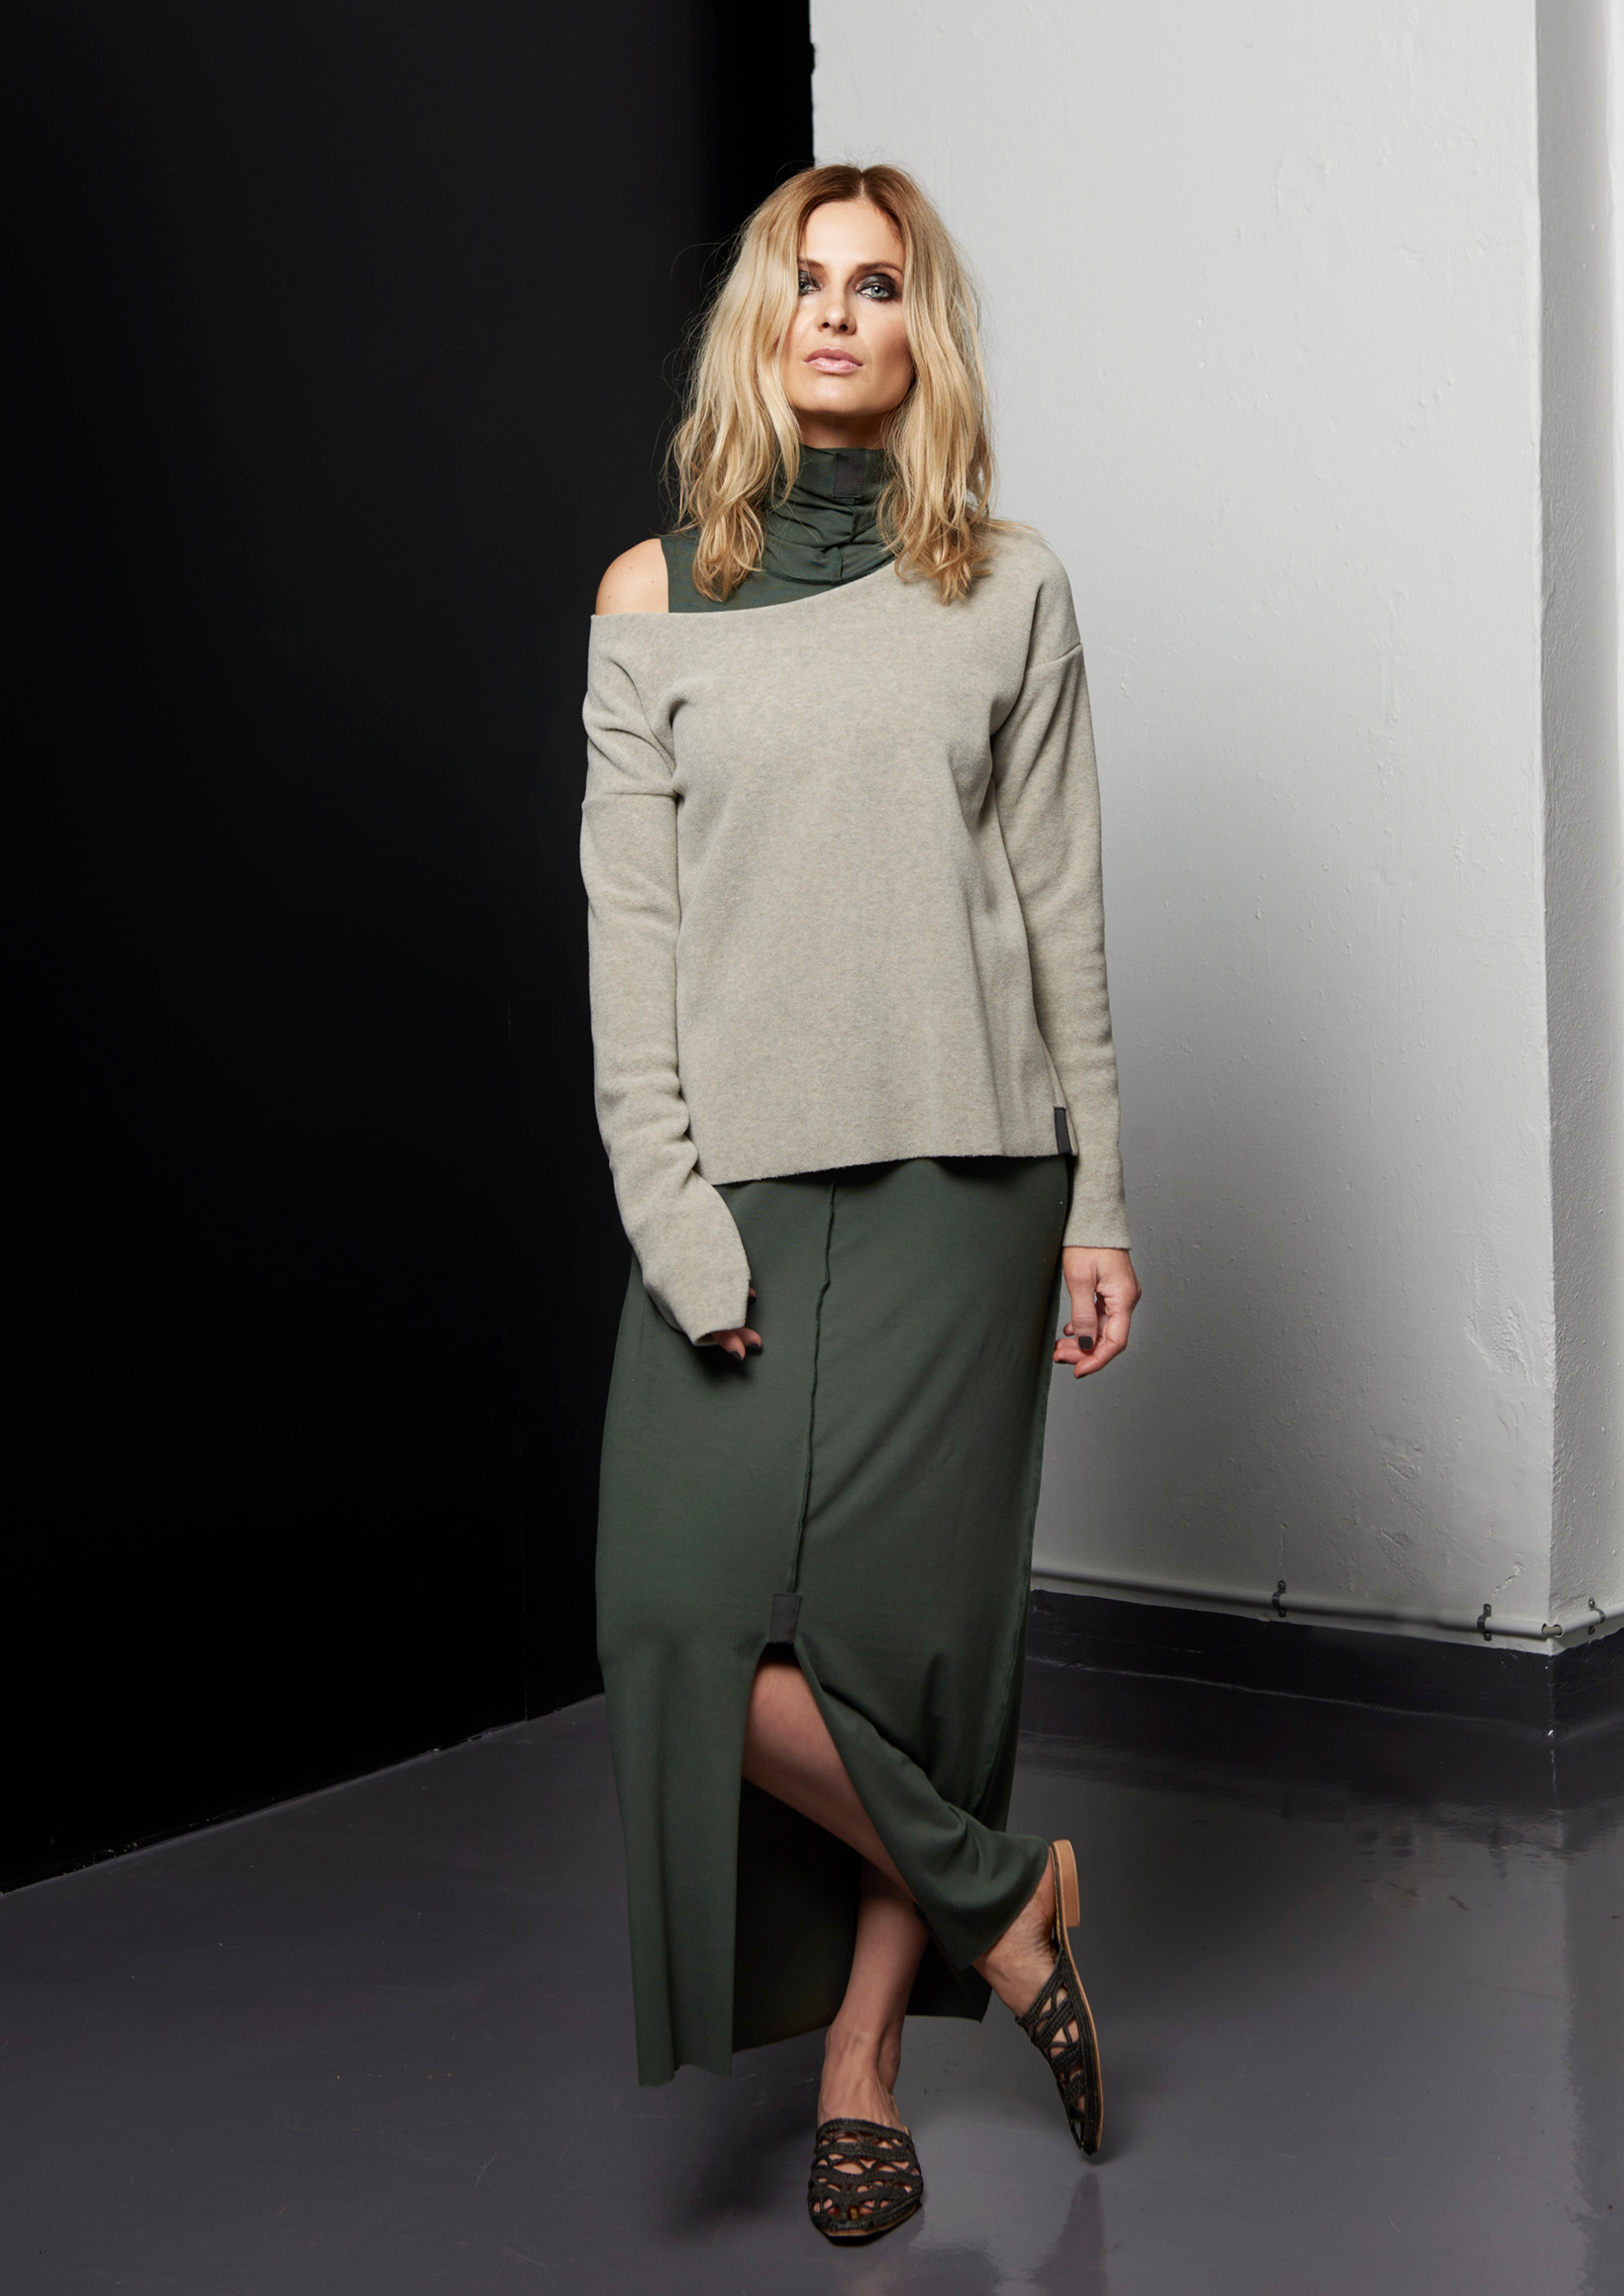 46fb3eb7c12f HENRIETTE STEFFENSEN Copenhagen 6055 DRESS LONG GREEN